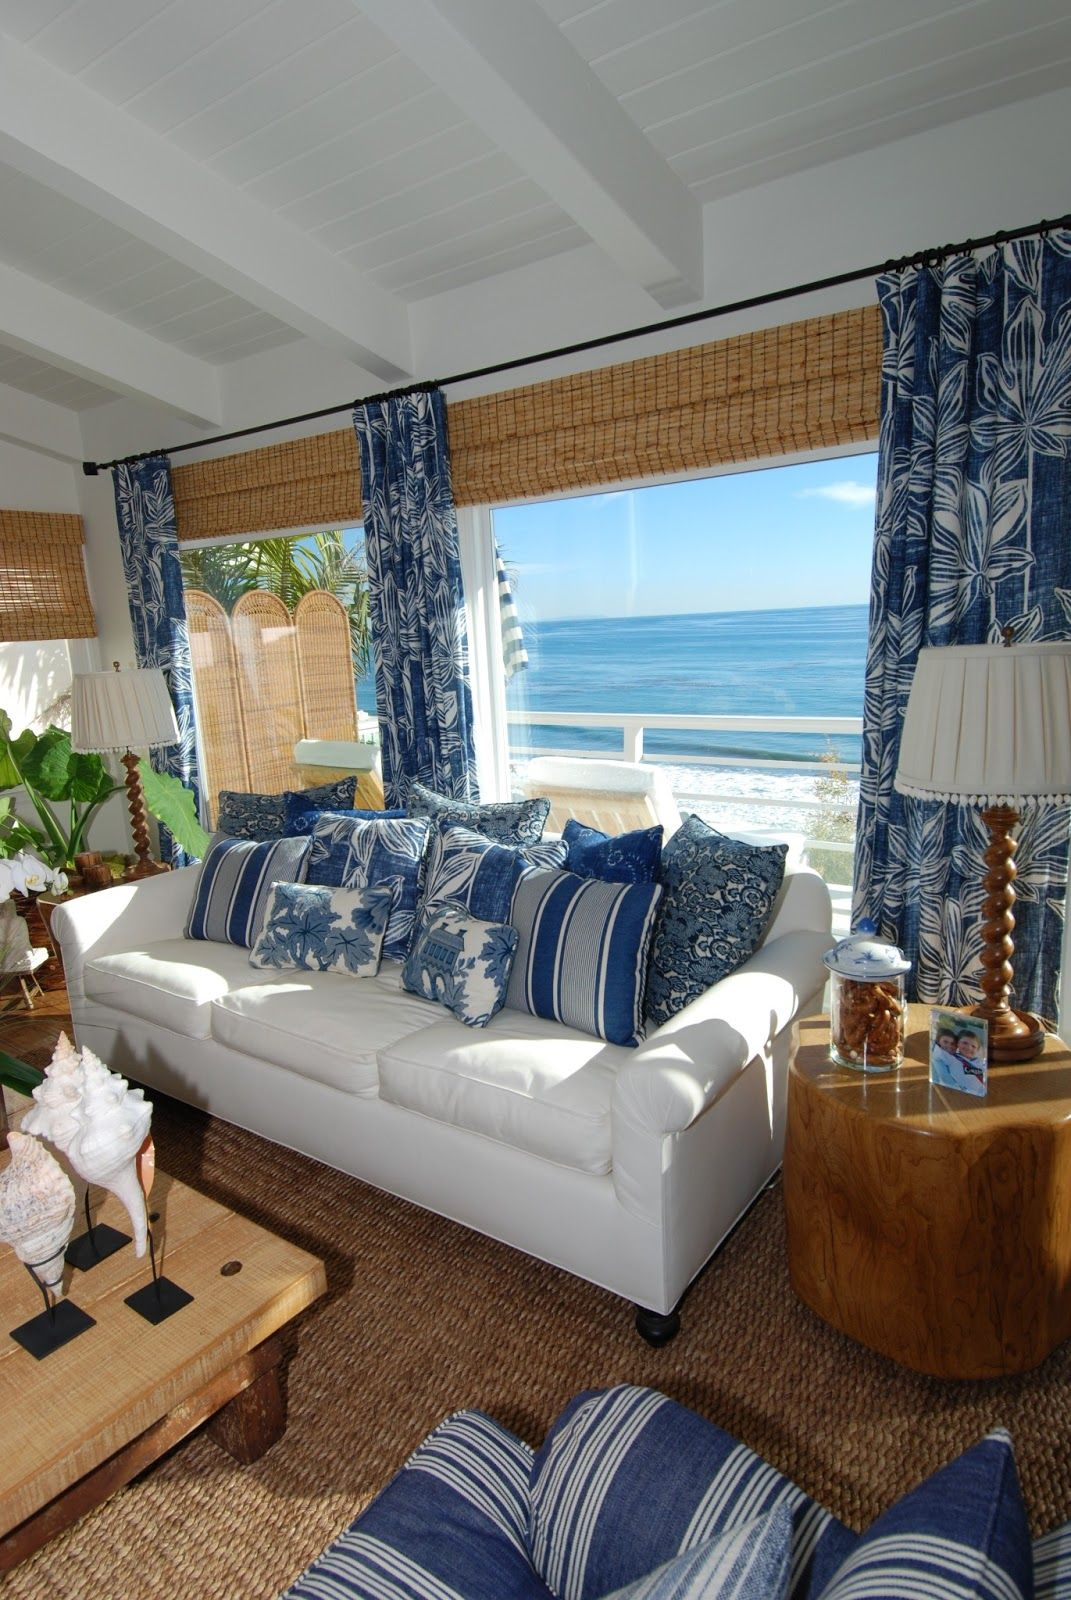 Sea Blue And White Always A Clic Beach House Look